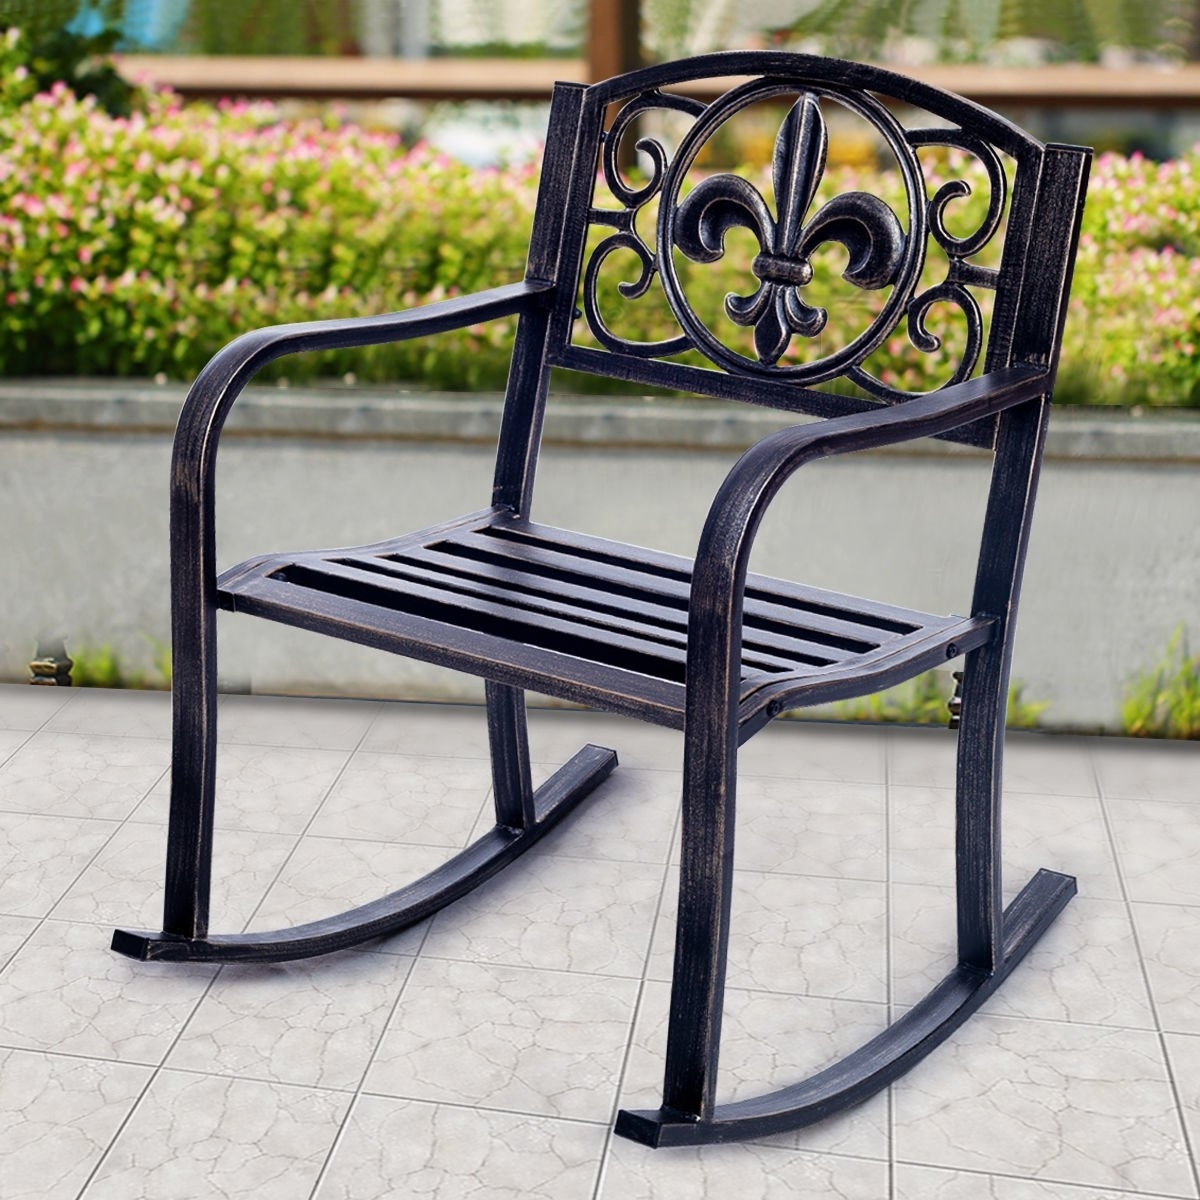 Patio Metal Rocking Chairs Intended For Best And Newest Costway: Costway Patio Metal Rocking Chair Porch Seat Deck Outdoor (View 7 of 20)